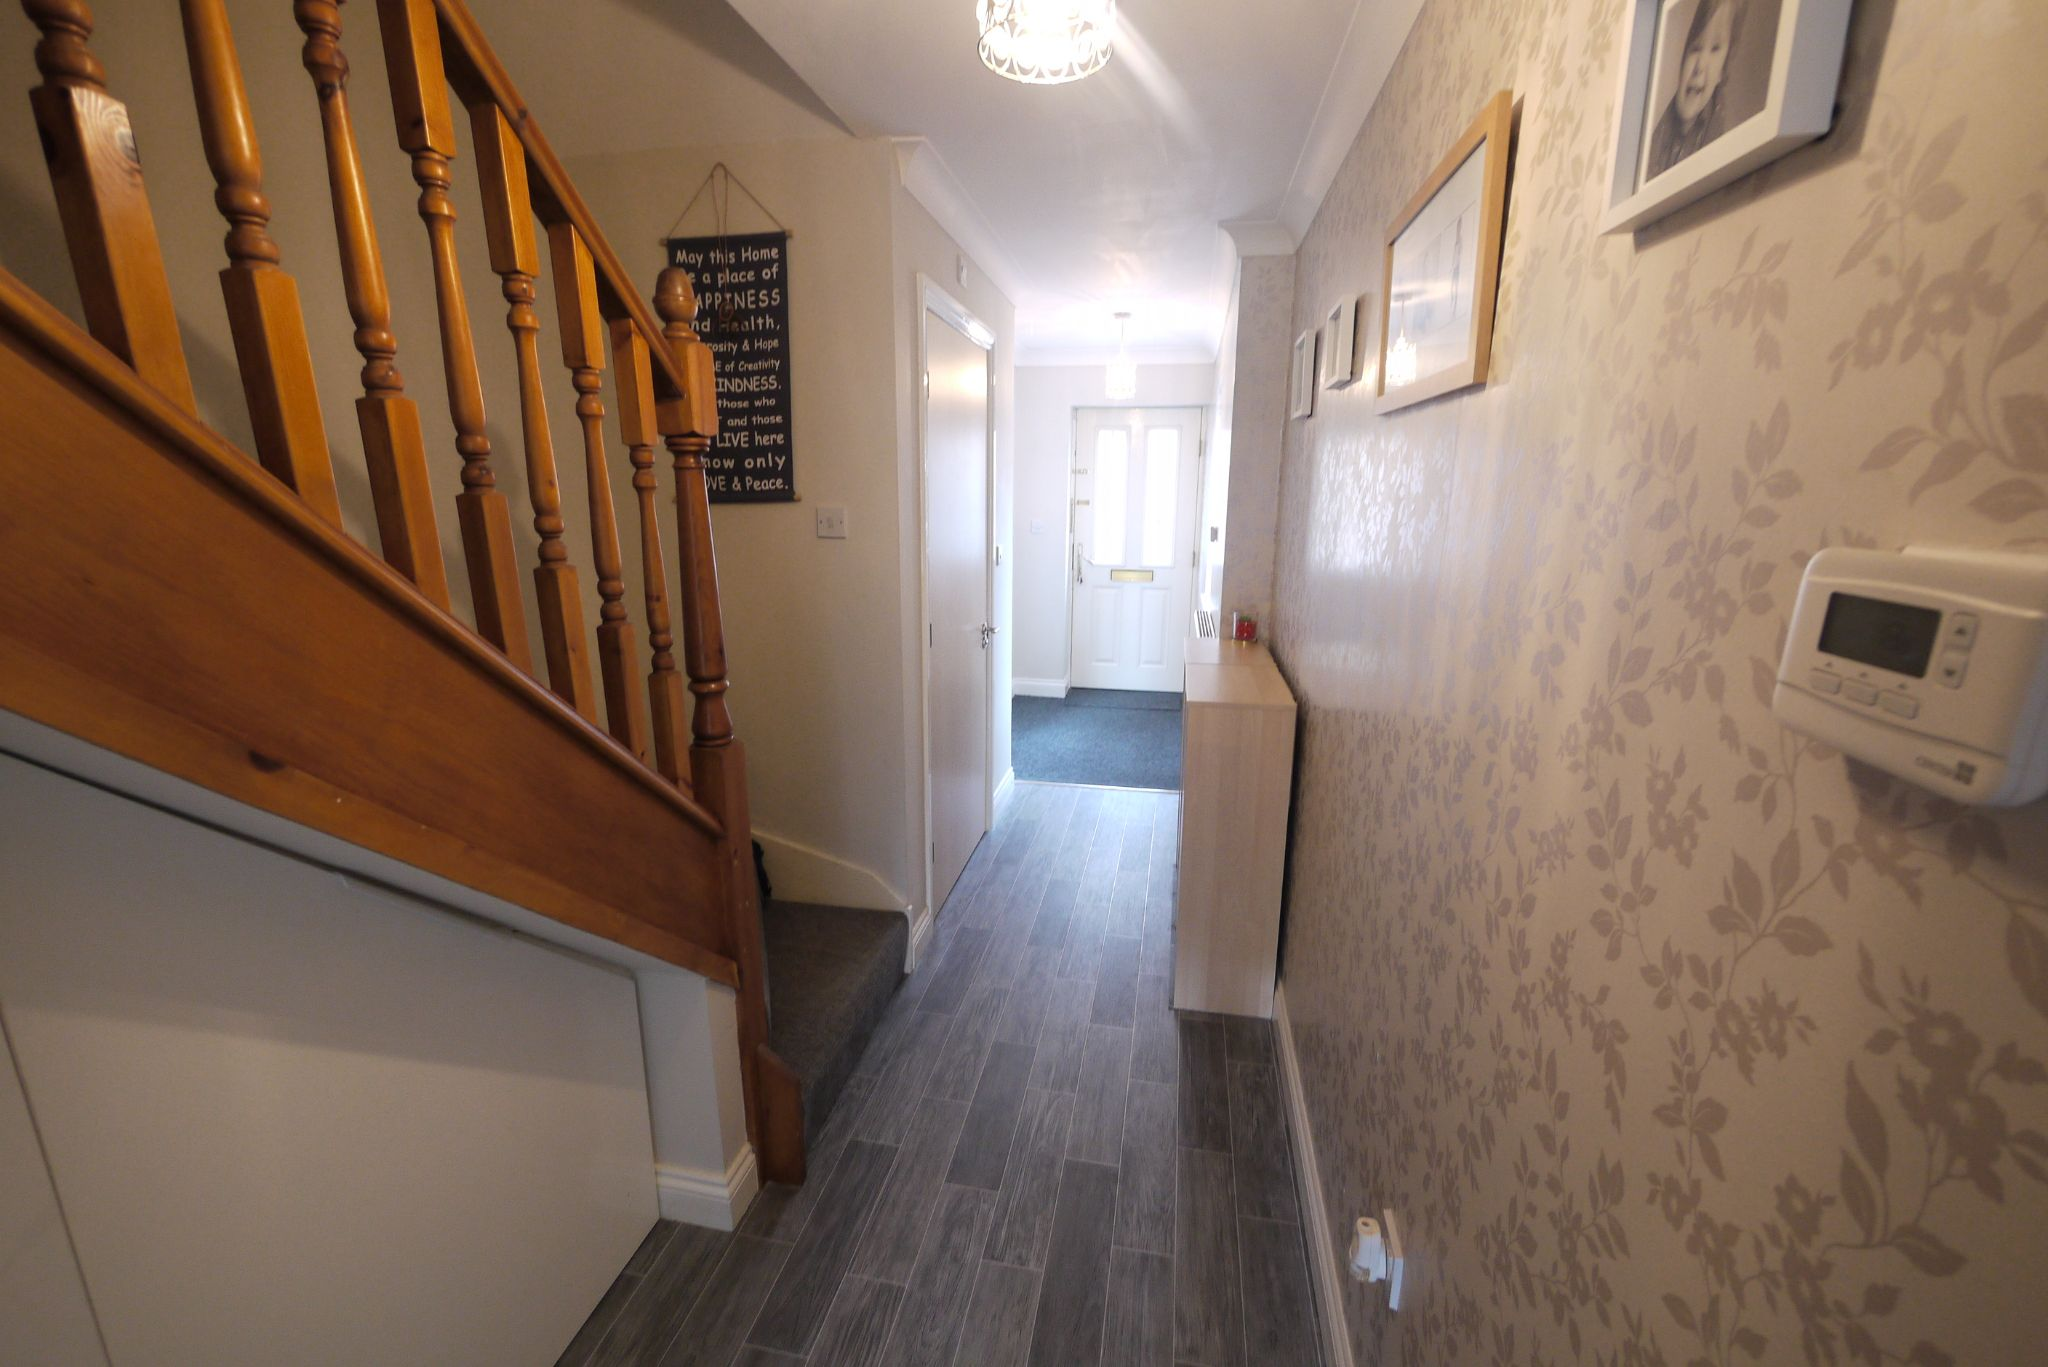 4 bedroom town house SSTC in Brighouse - Hallway.